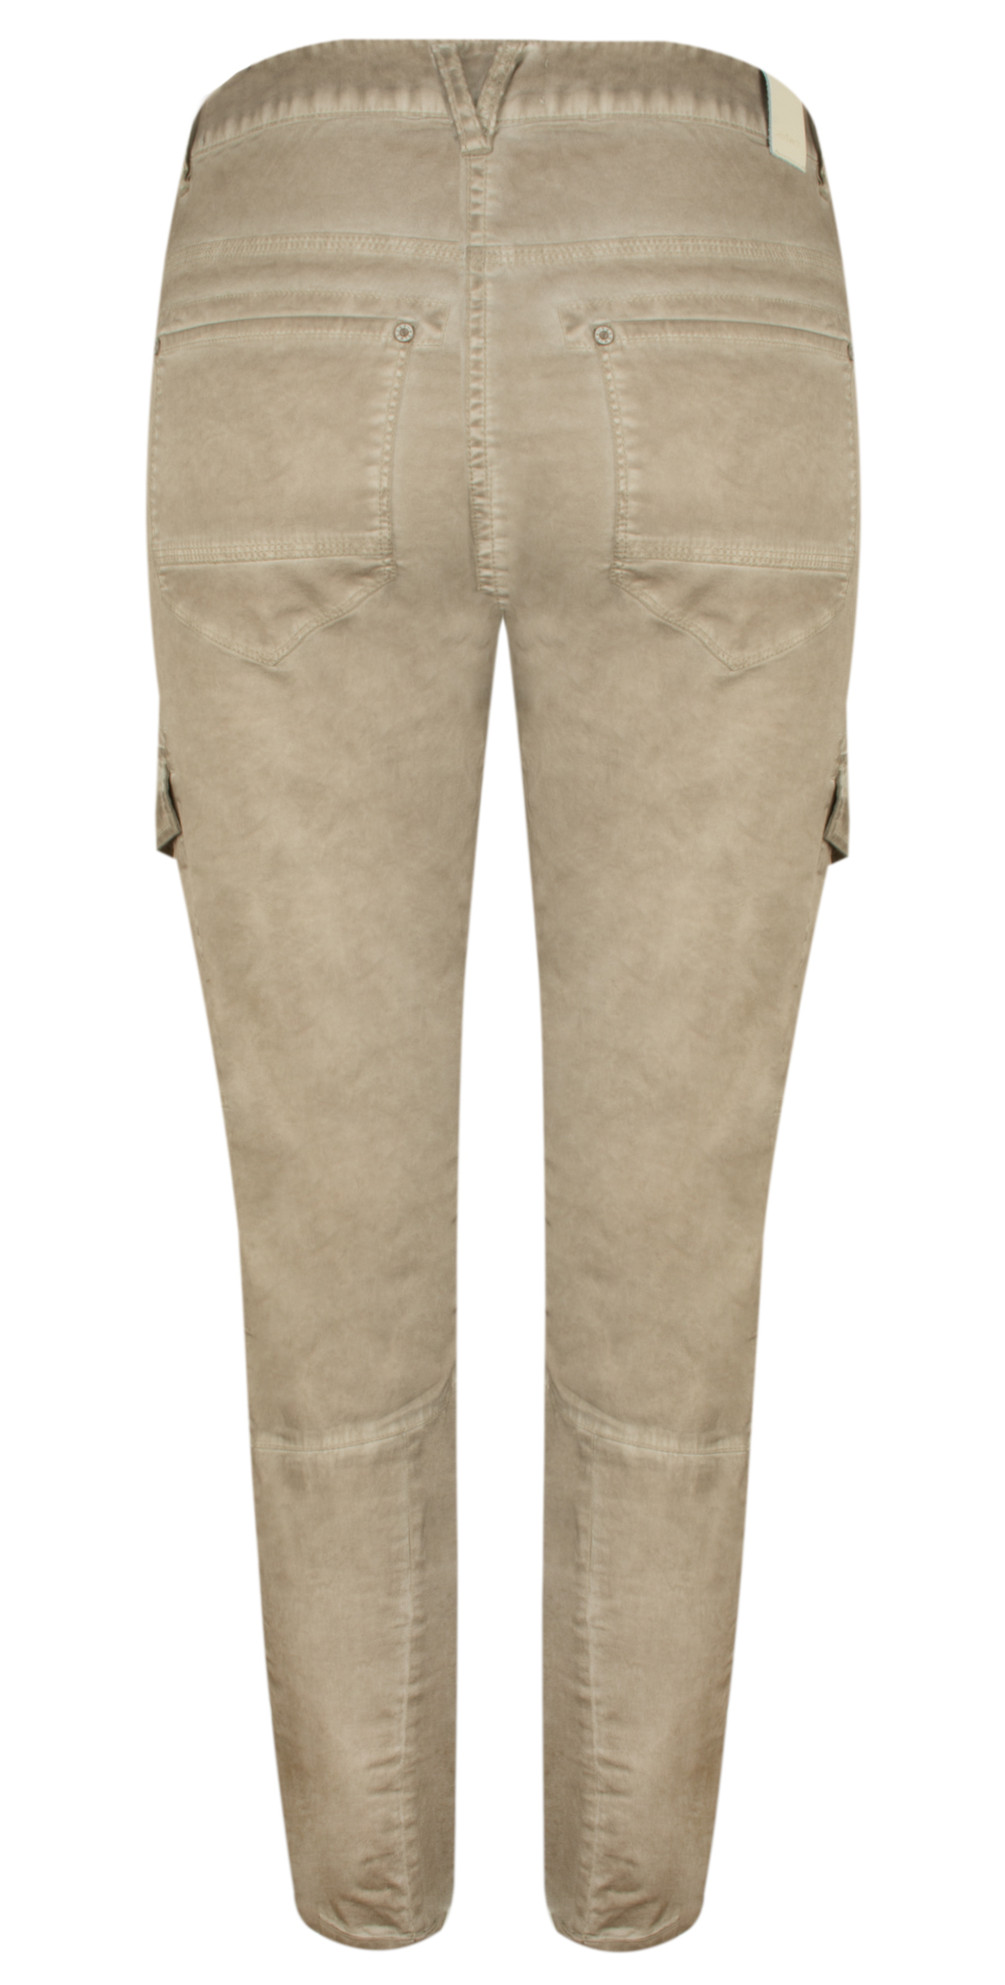 Structured Casual Trouser with Pockets main image